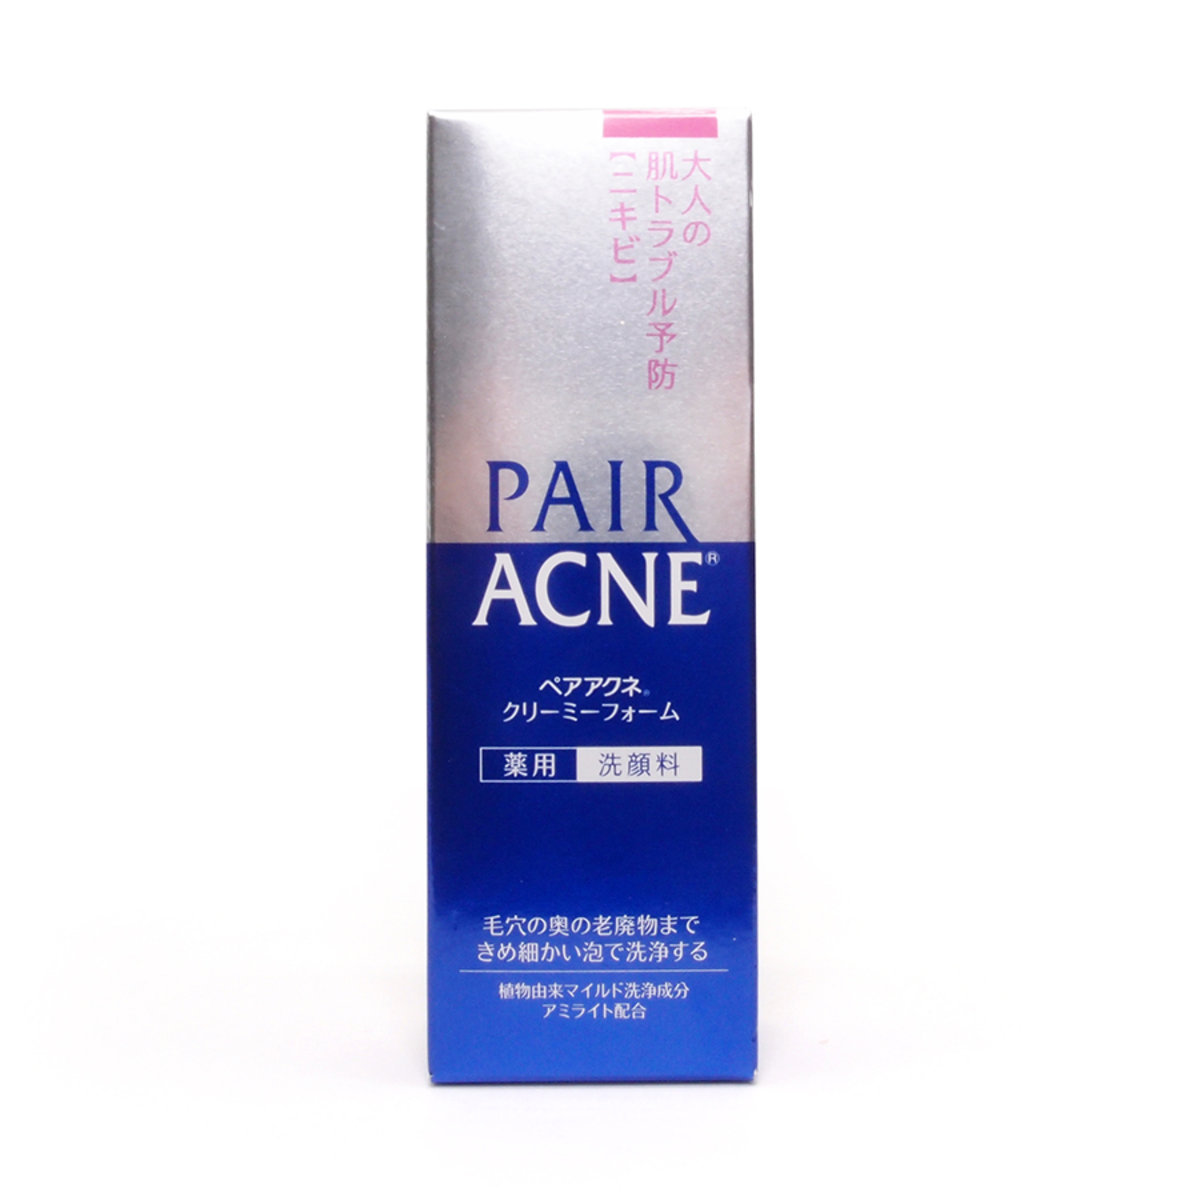 PAIR ACNE Creamy Foam   80g